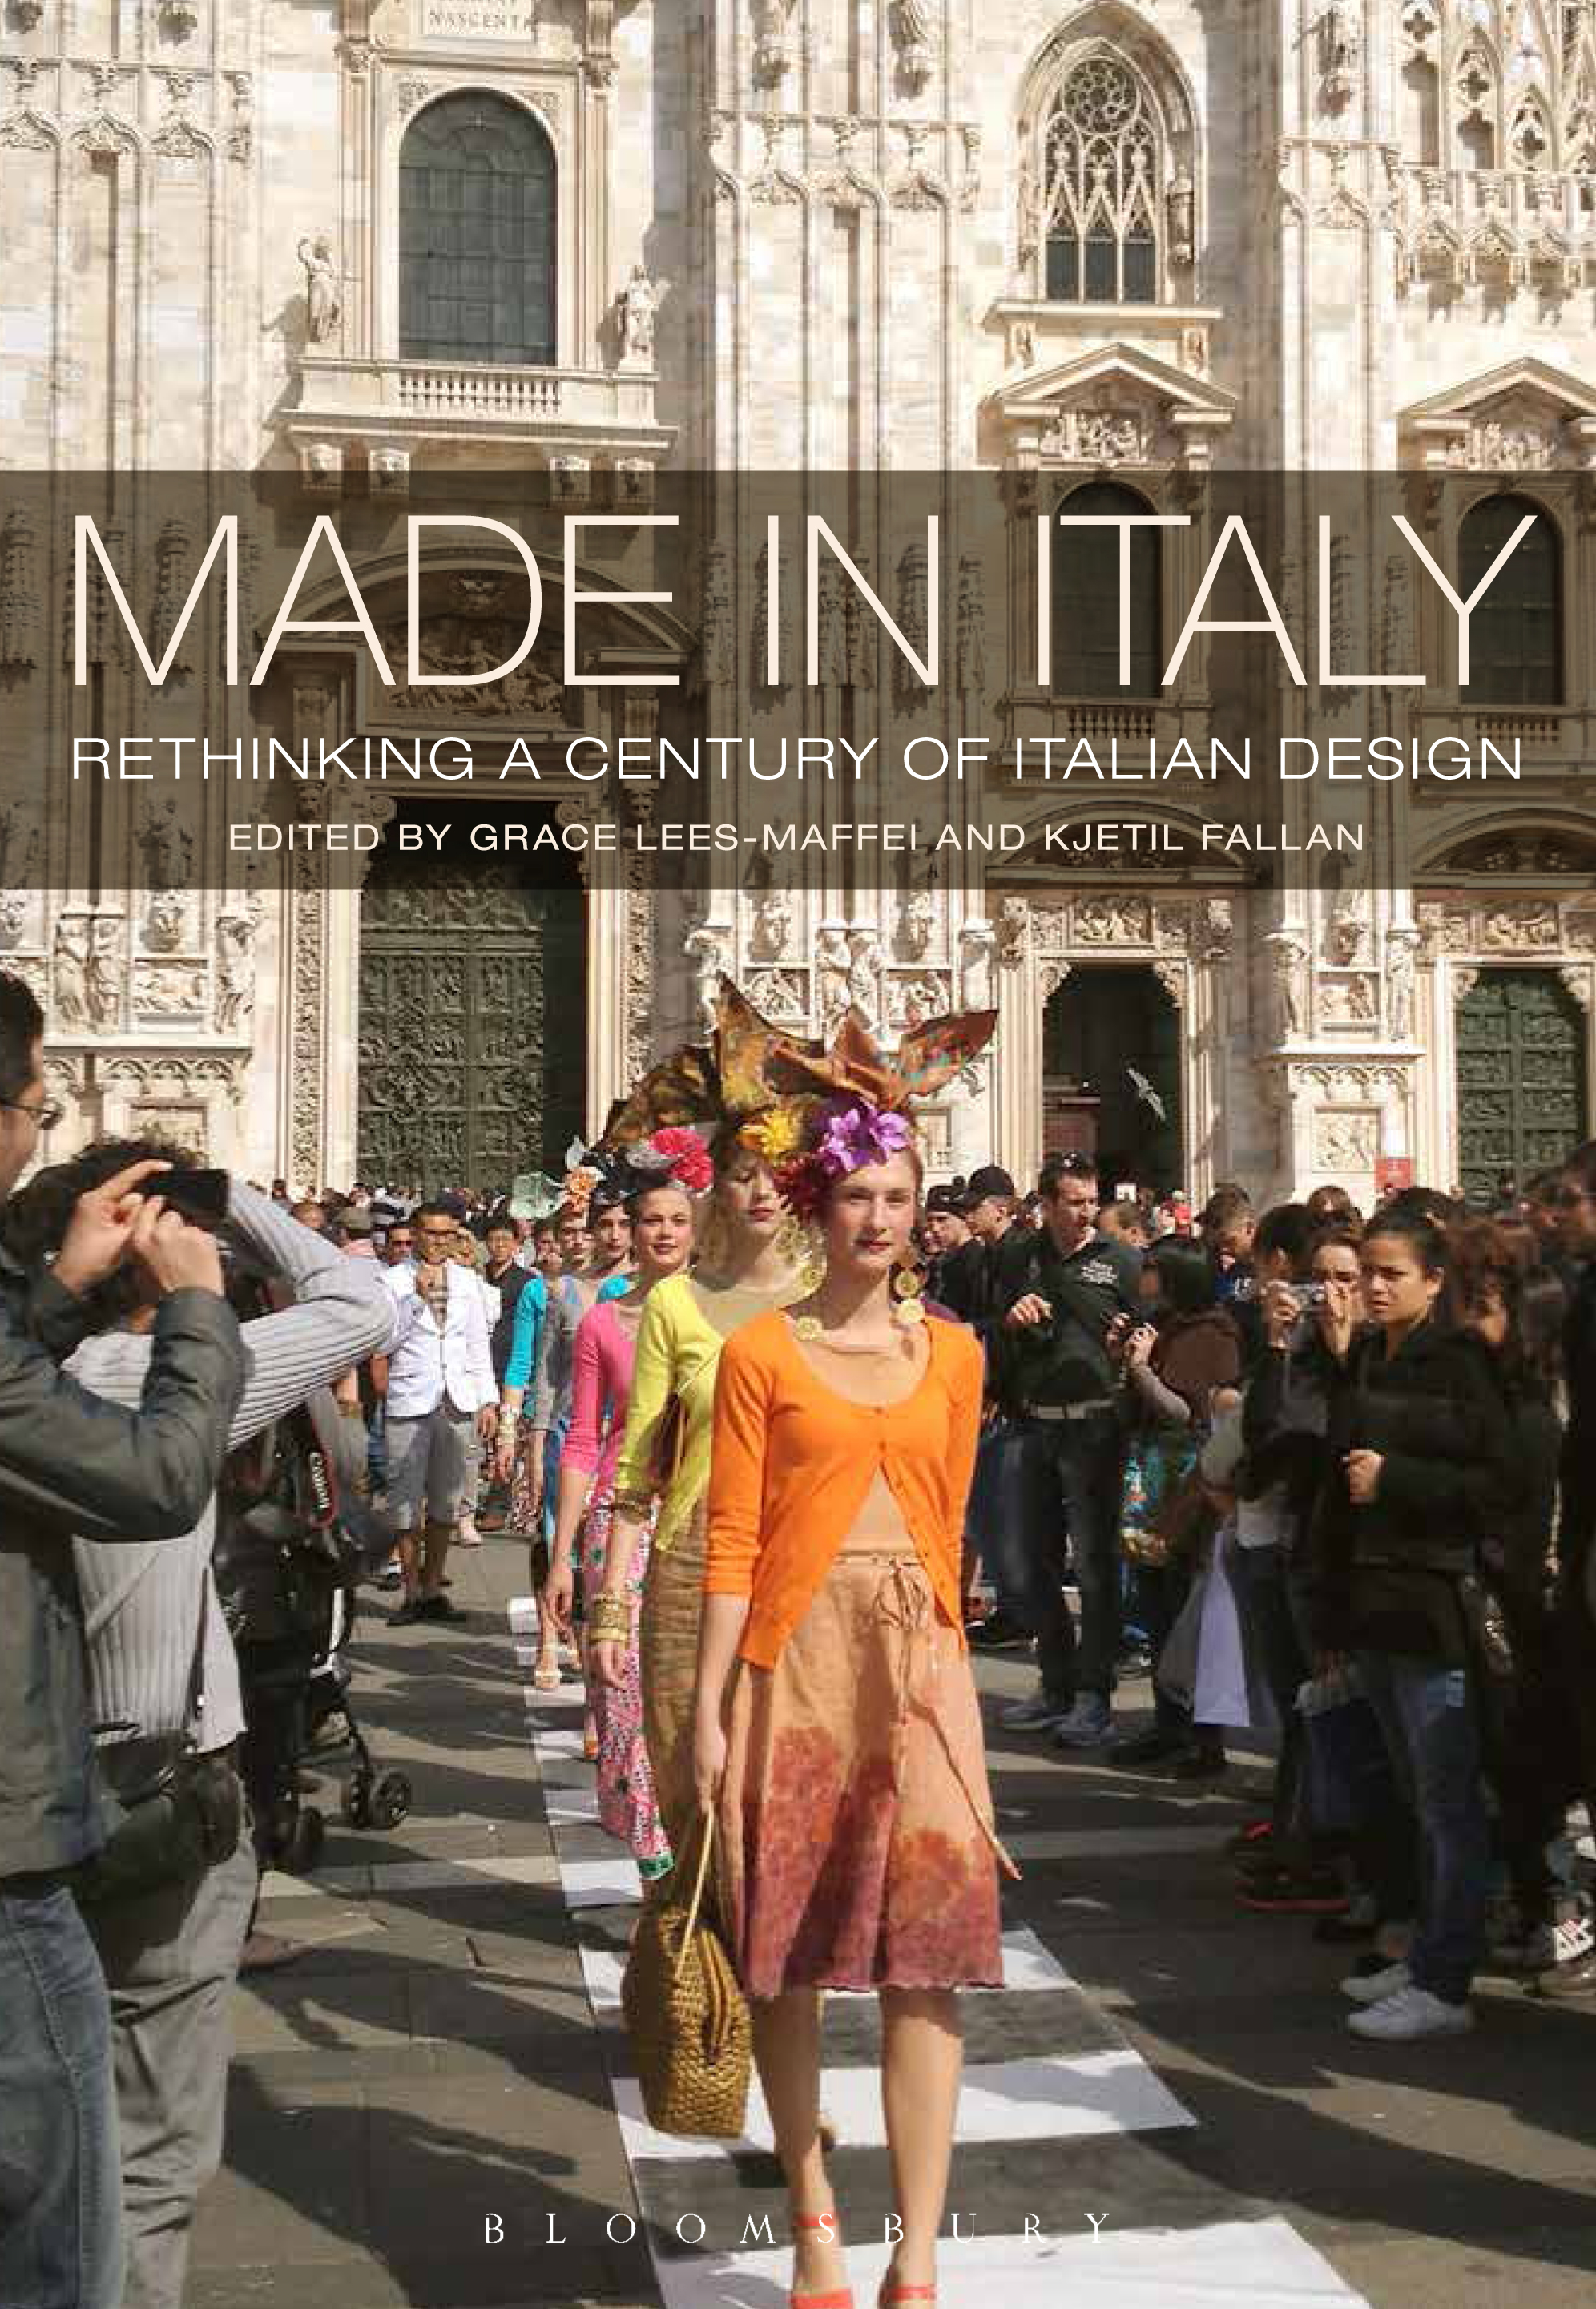 Lees-Maffei, G. & K. Fallan, eds.   Made in Italy: Rethinking a Century of Italian Design     (London: Bloomsbury Academic, 2014).